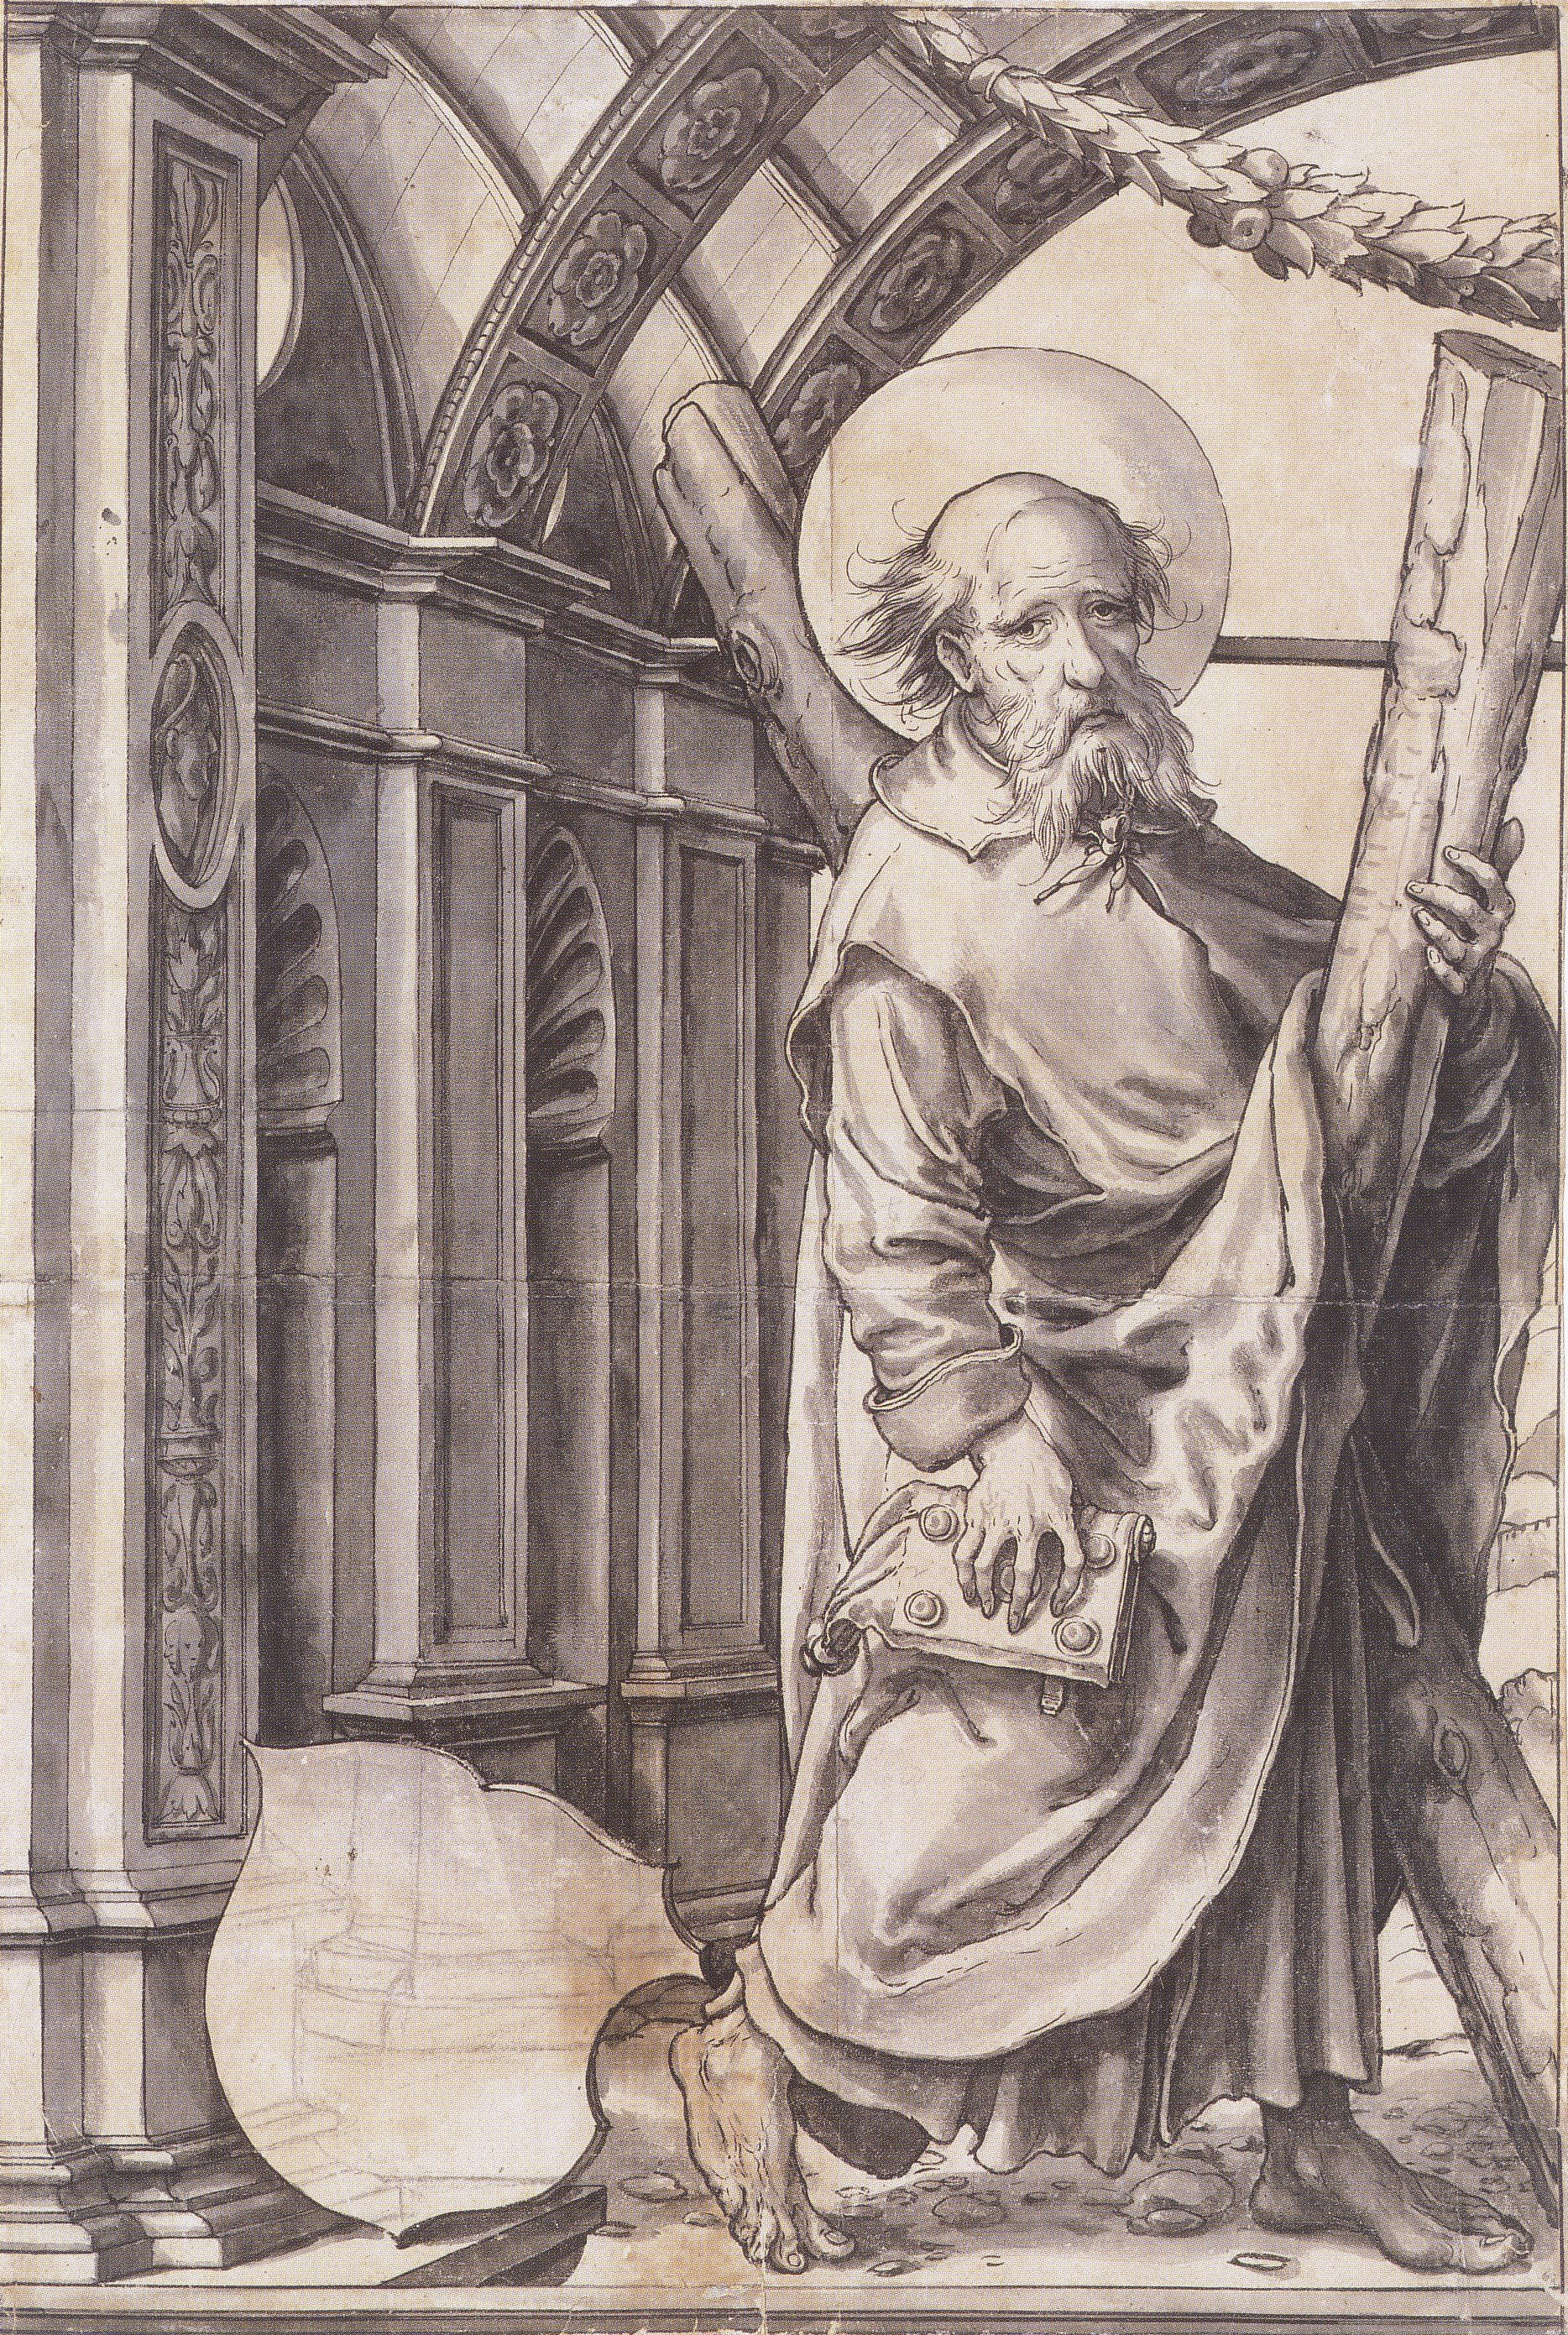 http://upload.wikimedia.org/wikipedia/commons/1/1e/St_Andrew%2C_Design_for_a_Stained_Glass_Window%2C_by_Hans_Holbein_the_Younger.jpg